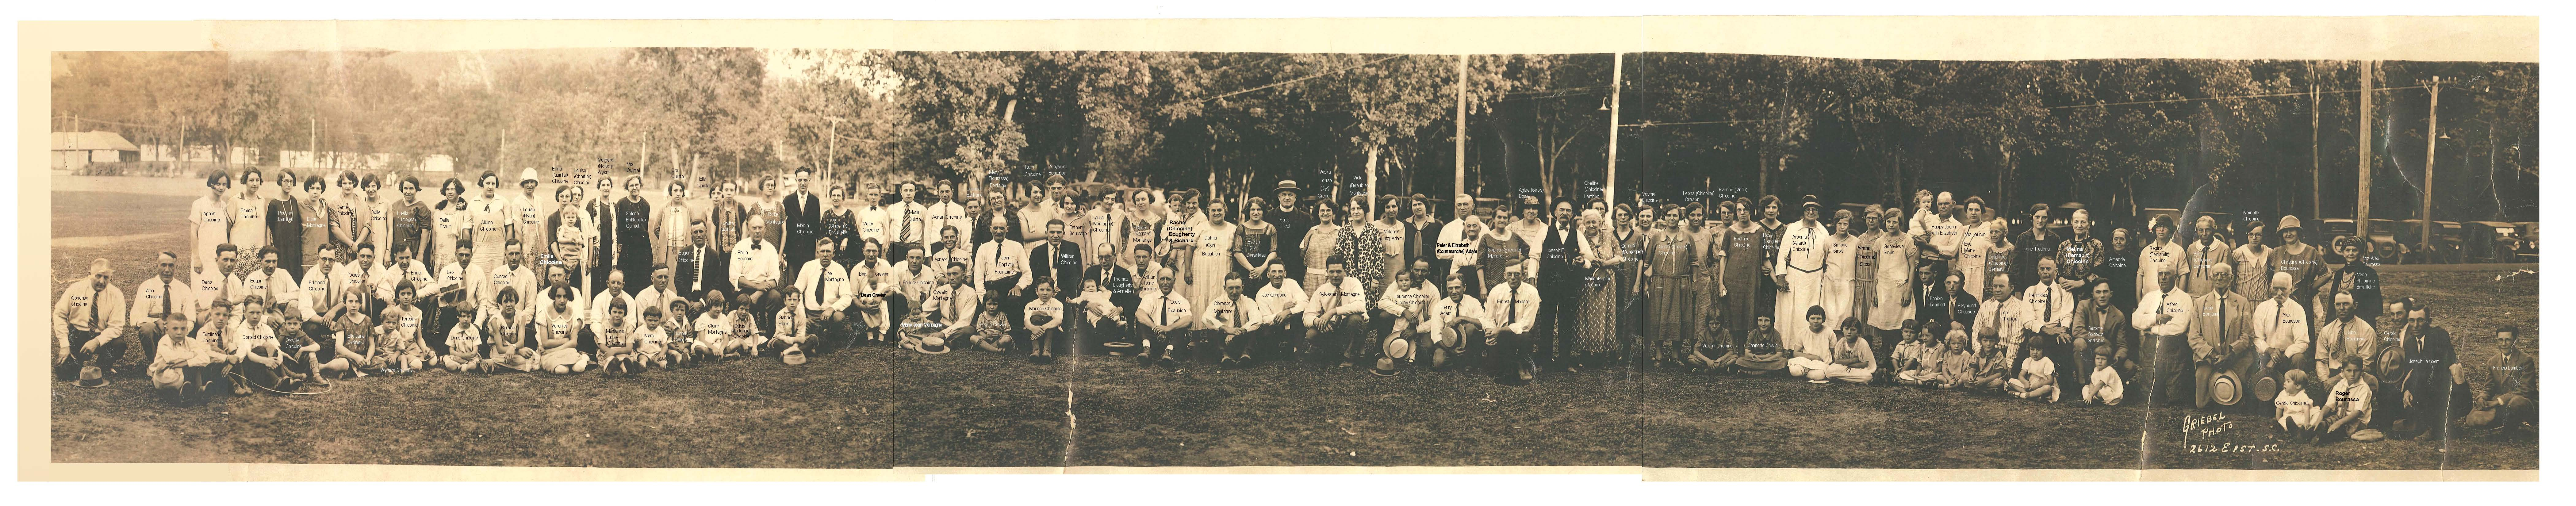 chicoine-family-reunion-picture